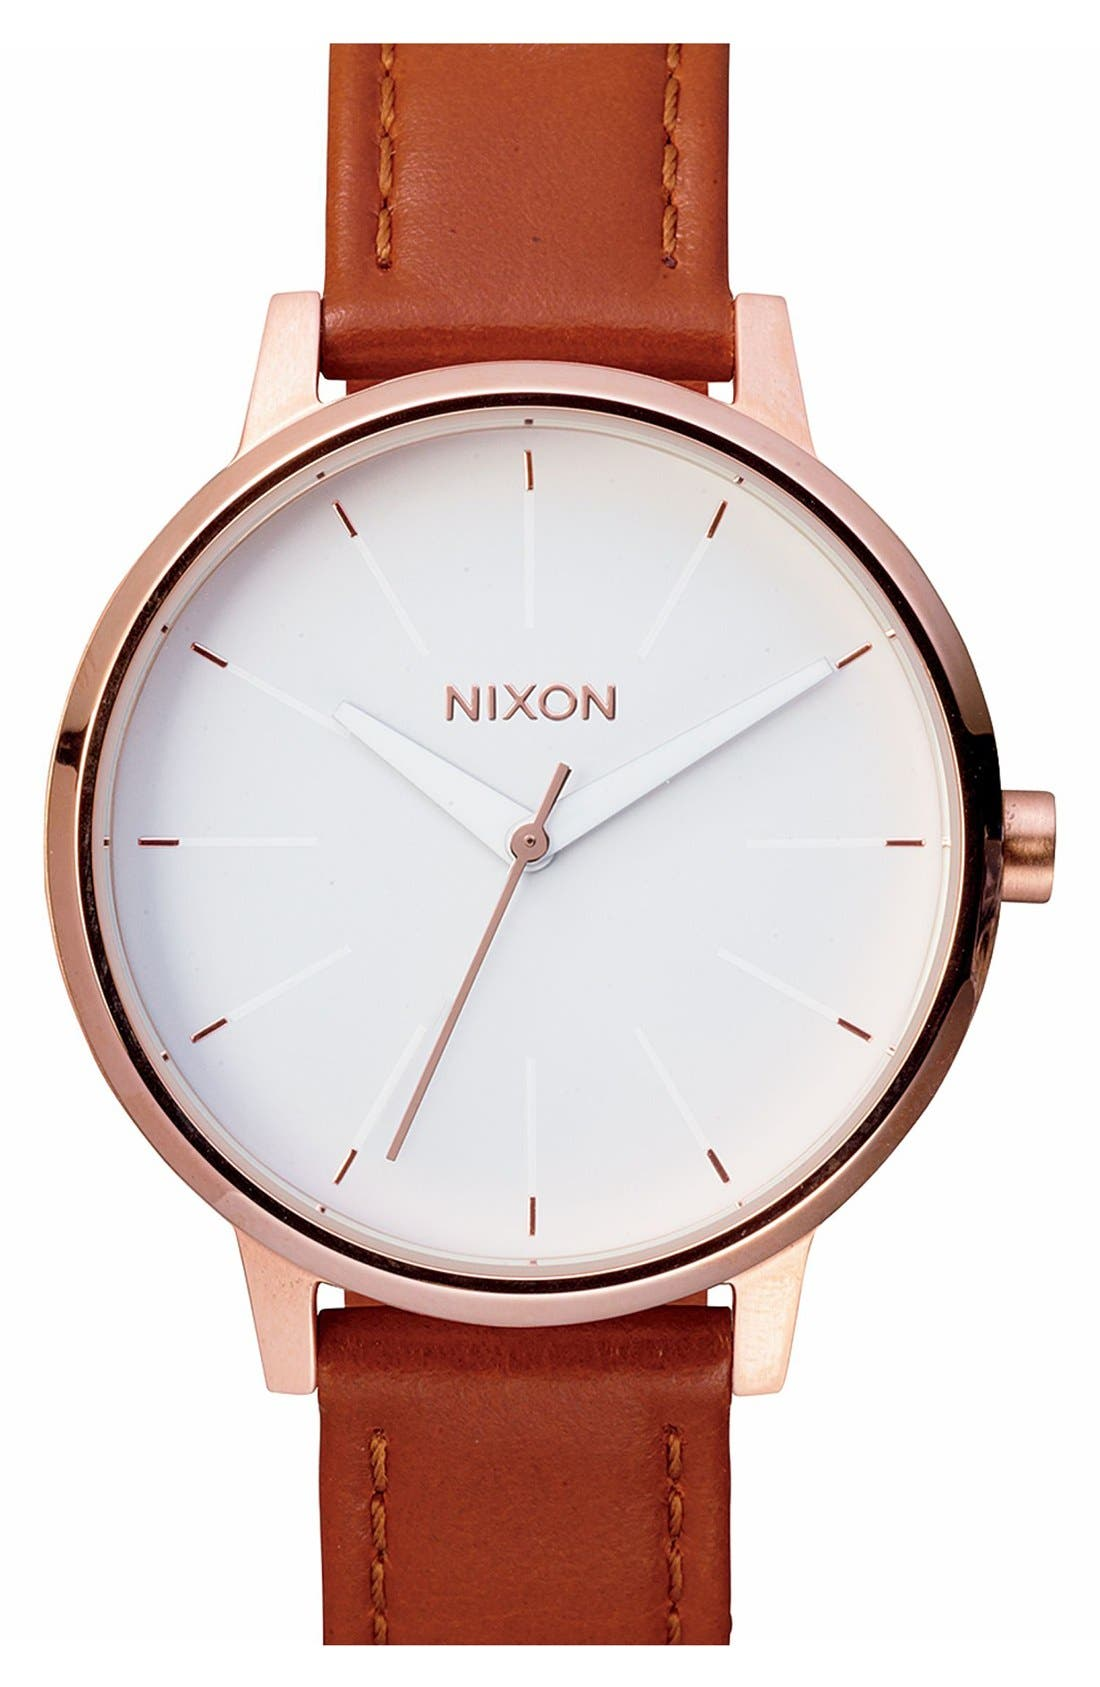 NIXON, 'The Kensington' Leather Strap Watch, 37mm, Main thumbnail 1, color, BROWN/ ROSE GOLD/ WHITE